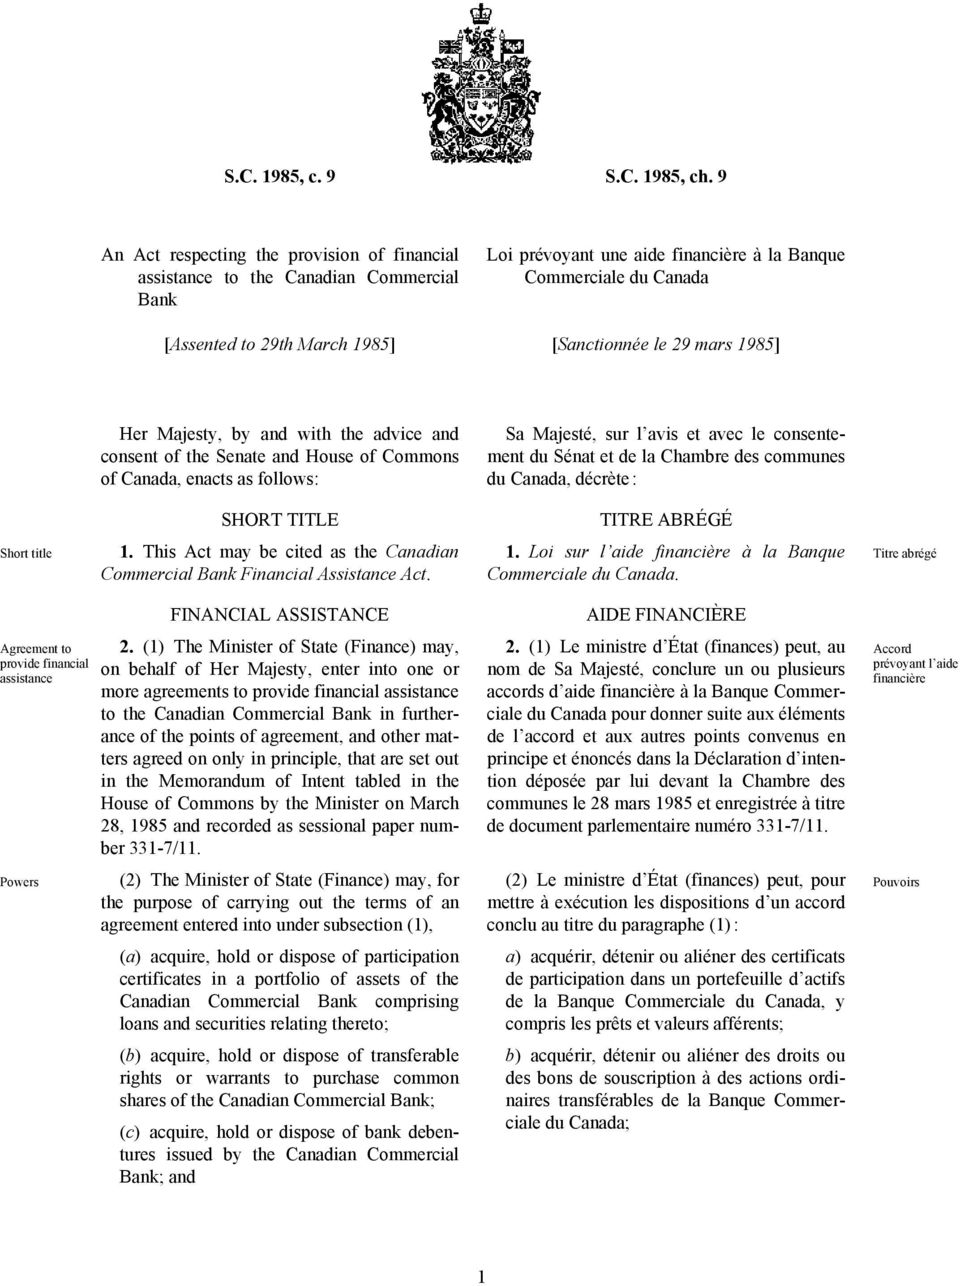 [Sanctionnée le 29 mars 1985] Her Majesty, by and with the advice and consent of the Senate and House of Commons of Canada, enacts as follows: Sa Majesté, sur l avis et avec le consentement du Sénat